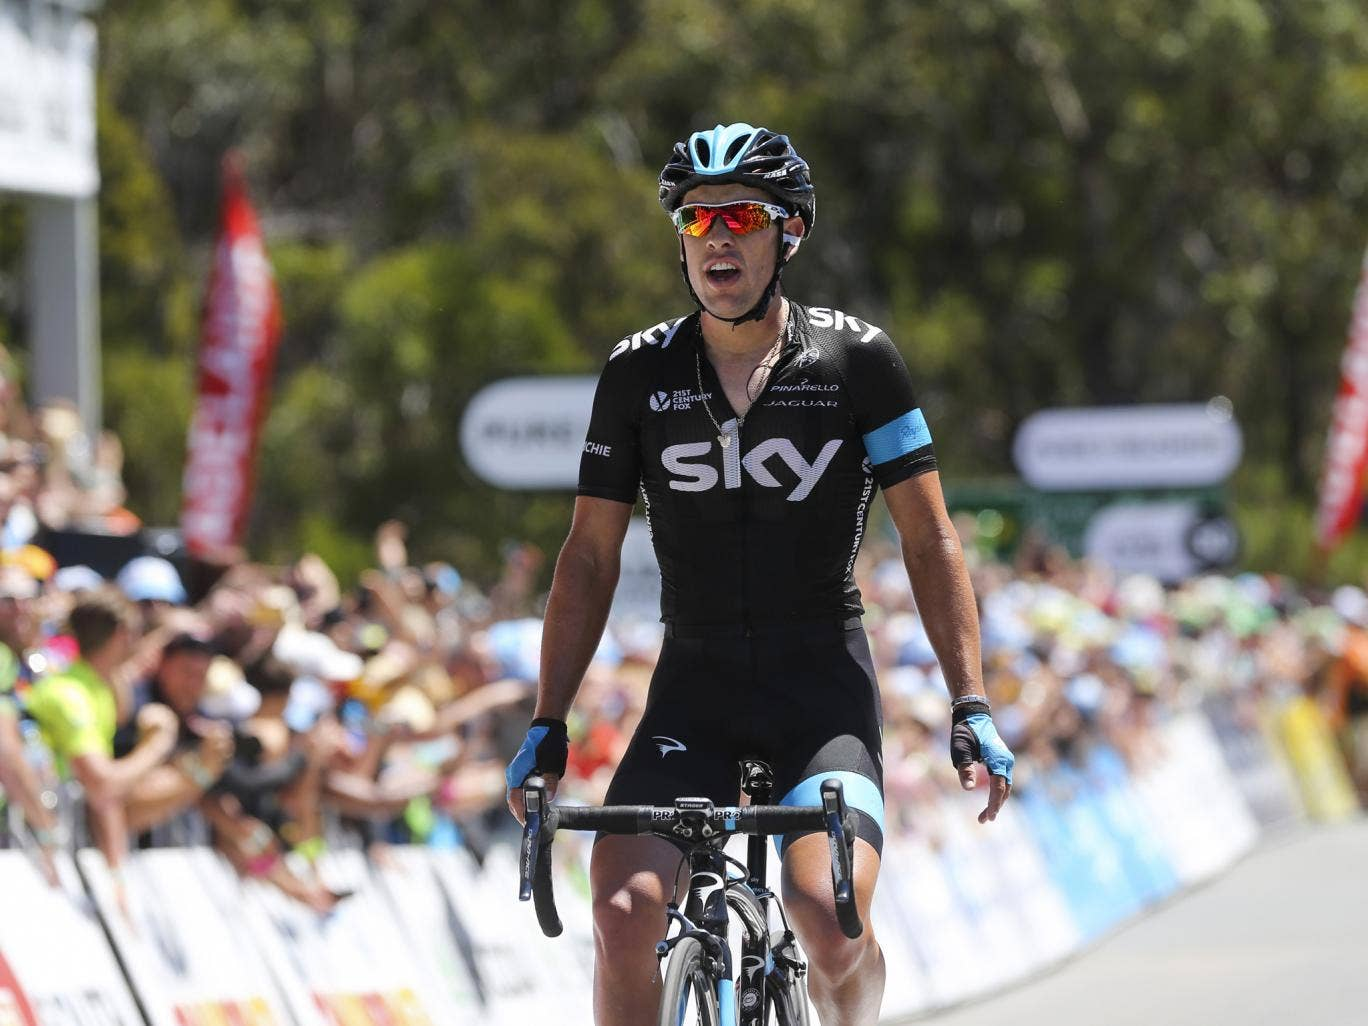 Team Sky rider Richie Porte takes victory on the fifth stage of the Tour Down Under